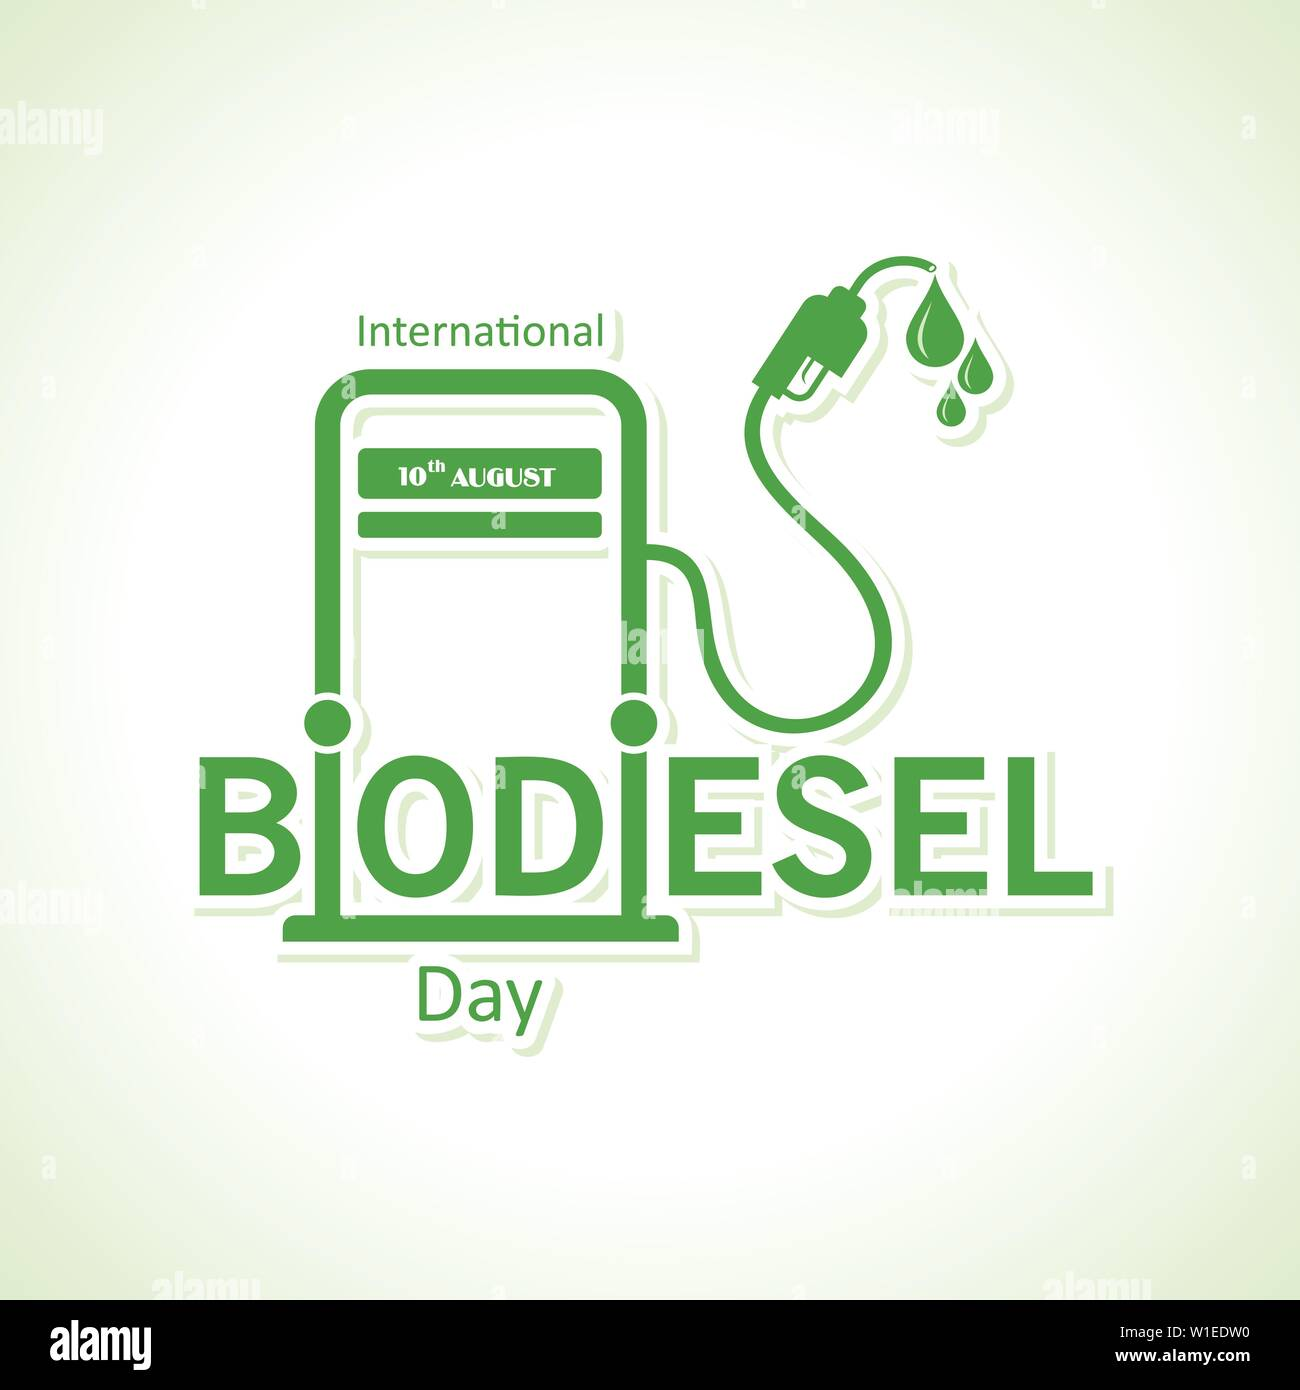 Illustration of International Biodiesel Day Greeting for Eco Environment - 10 August - Stock Vector